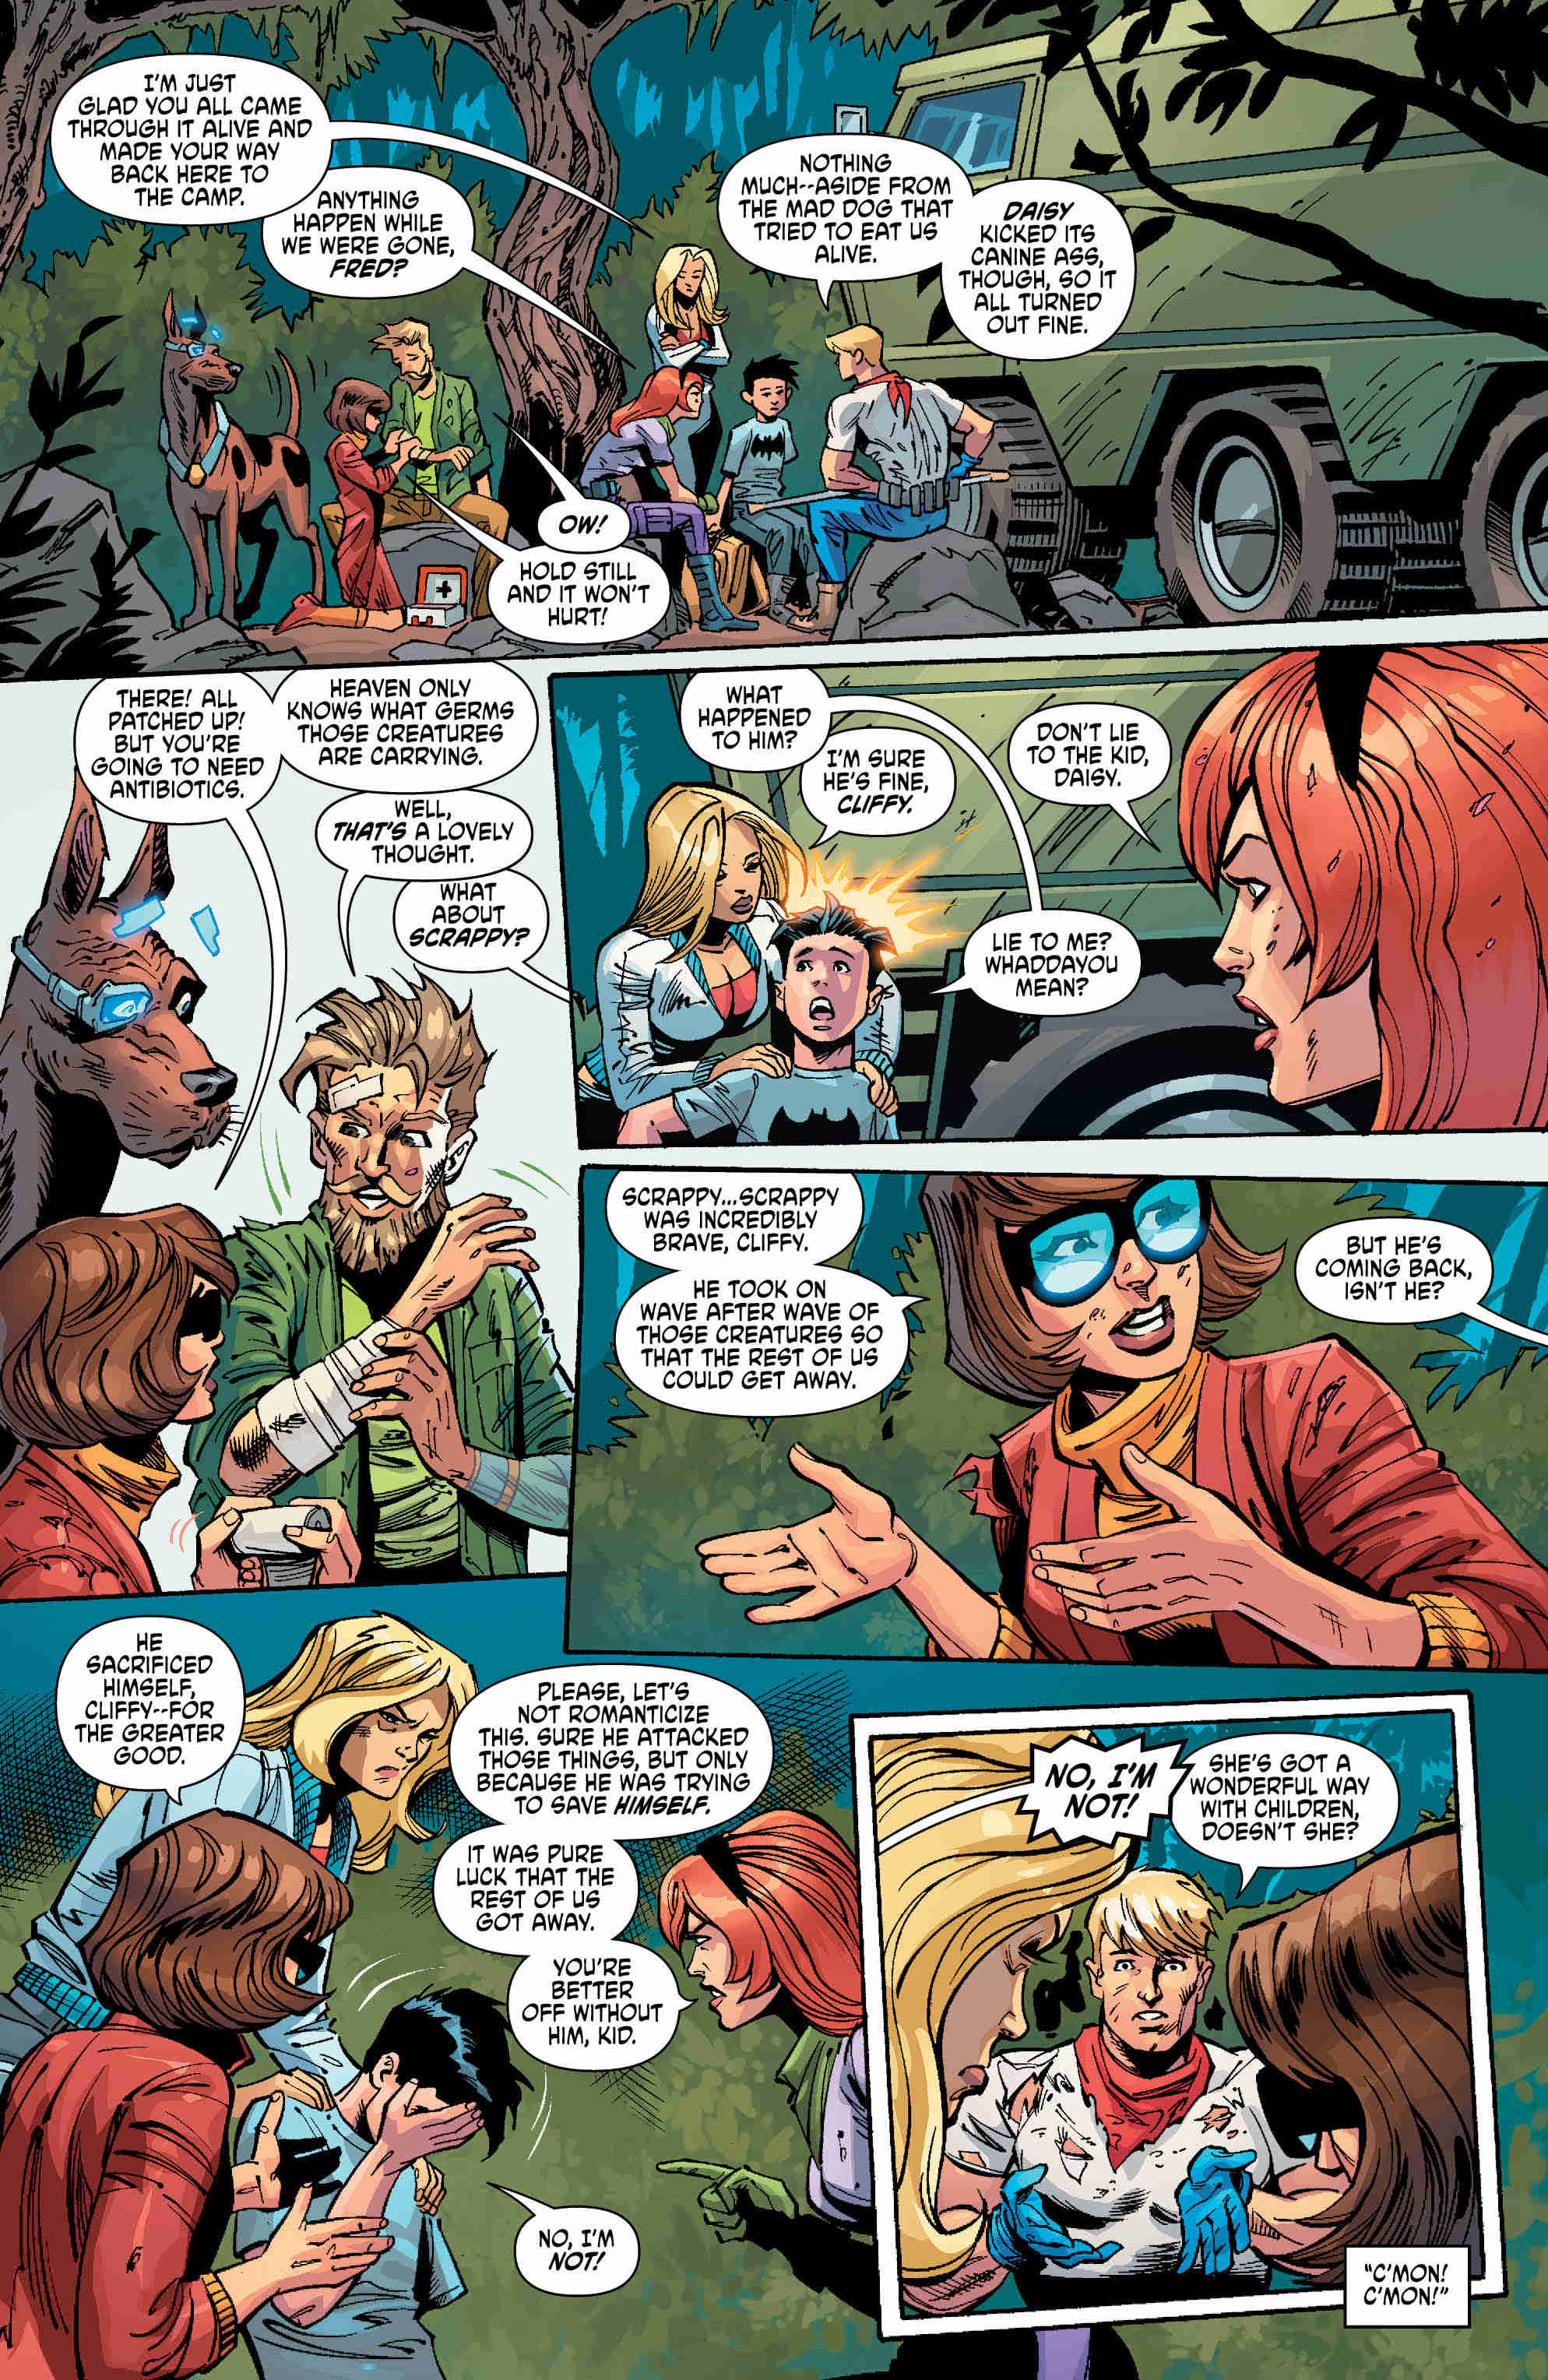 Exclusive Preview: Those Meddling Kids Regroup In Scooby Apocalypse #18